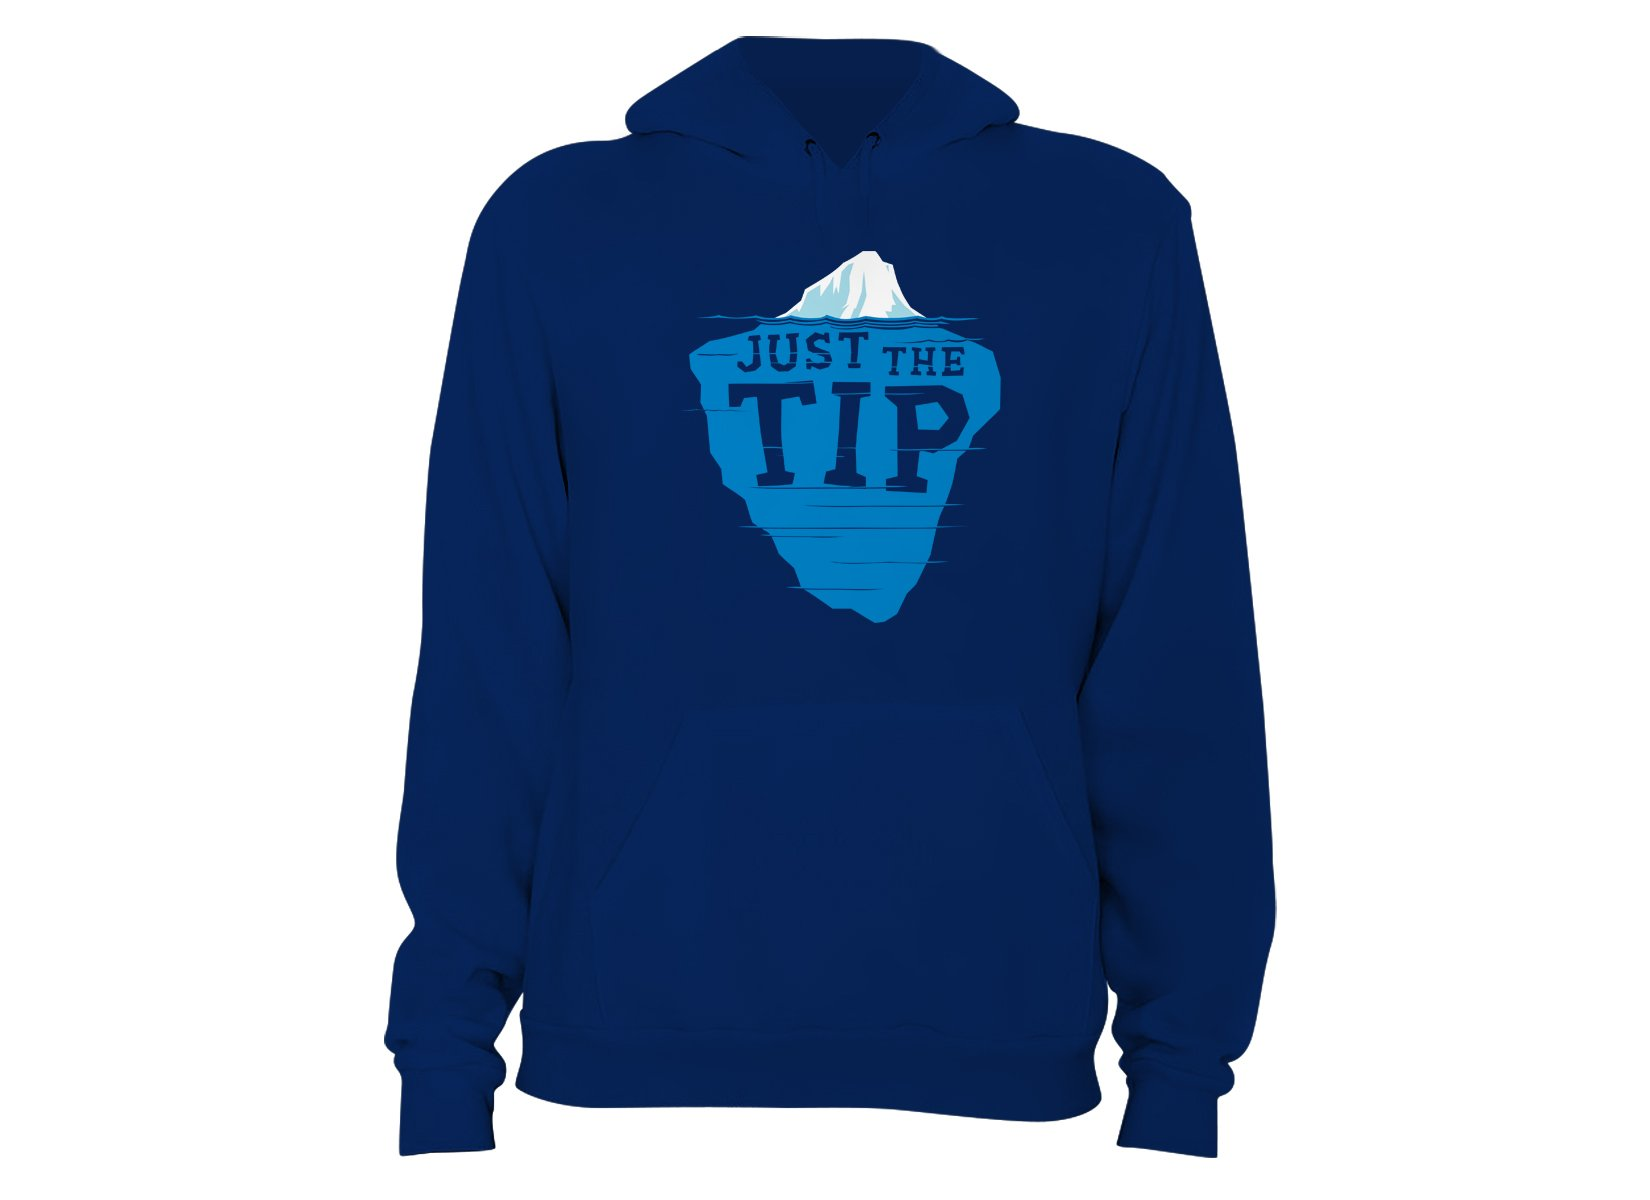 Just The Tip on Hoodie